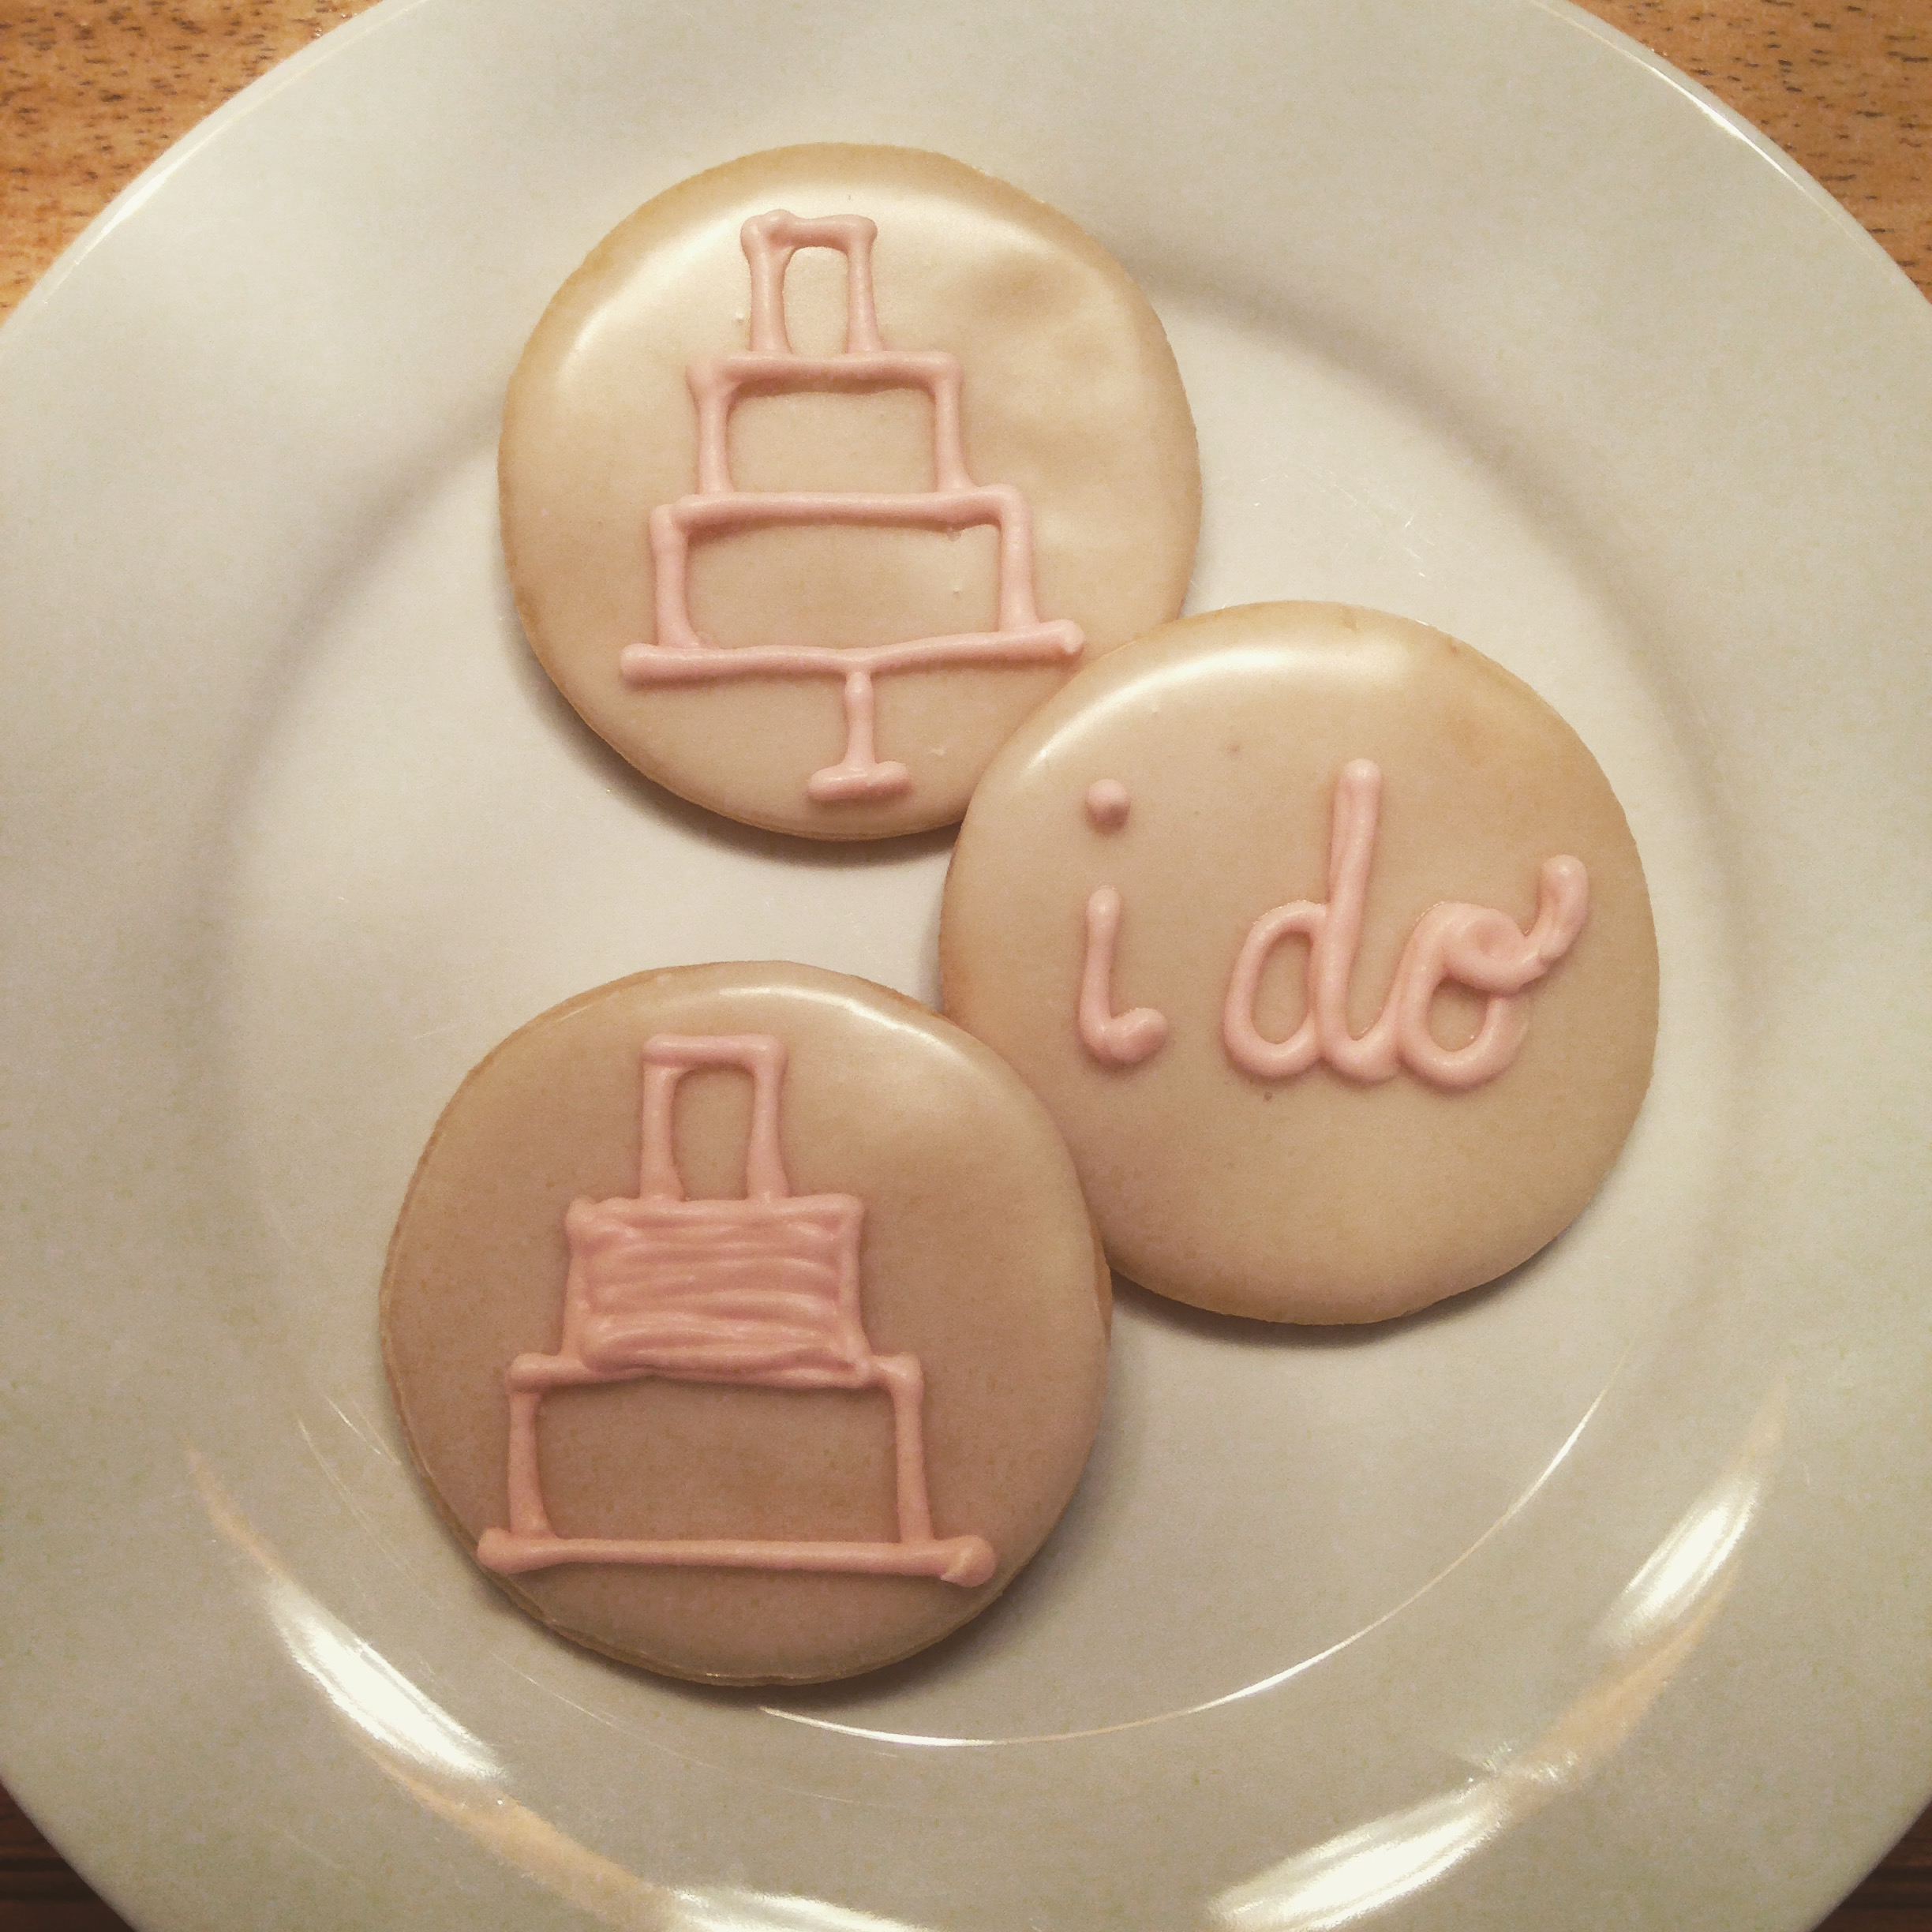 Wedding Cookies.JPG